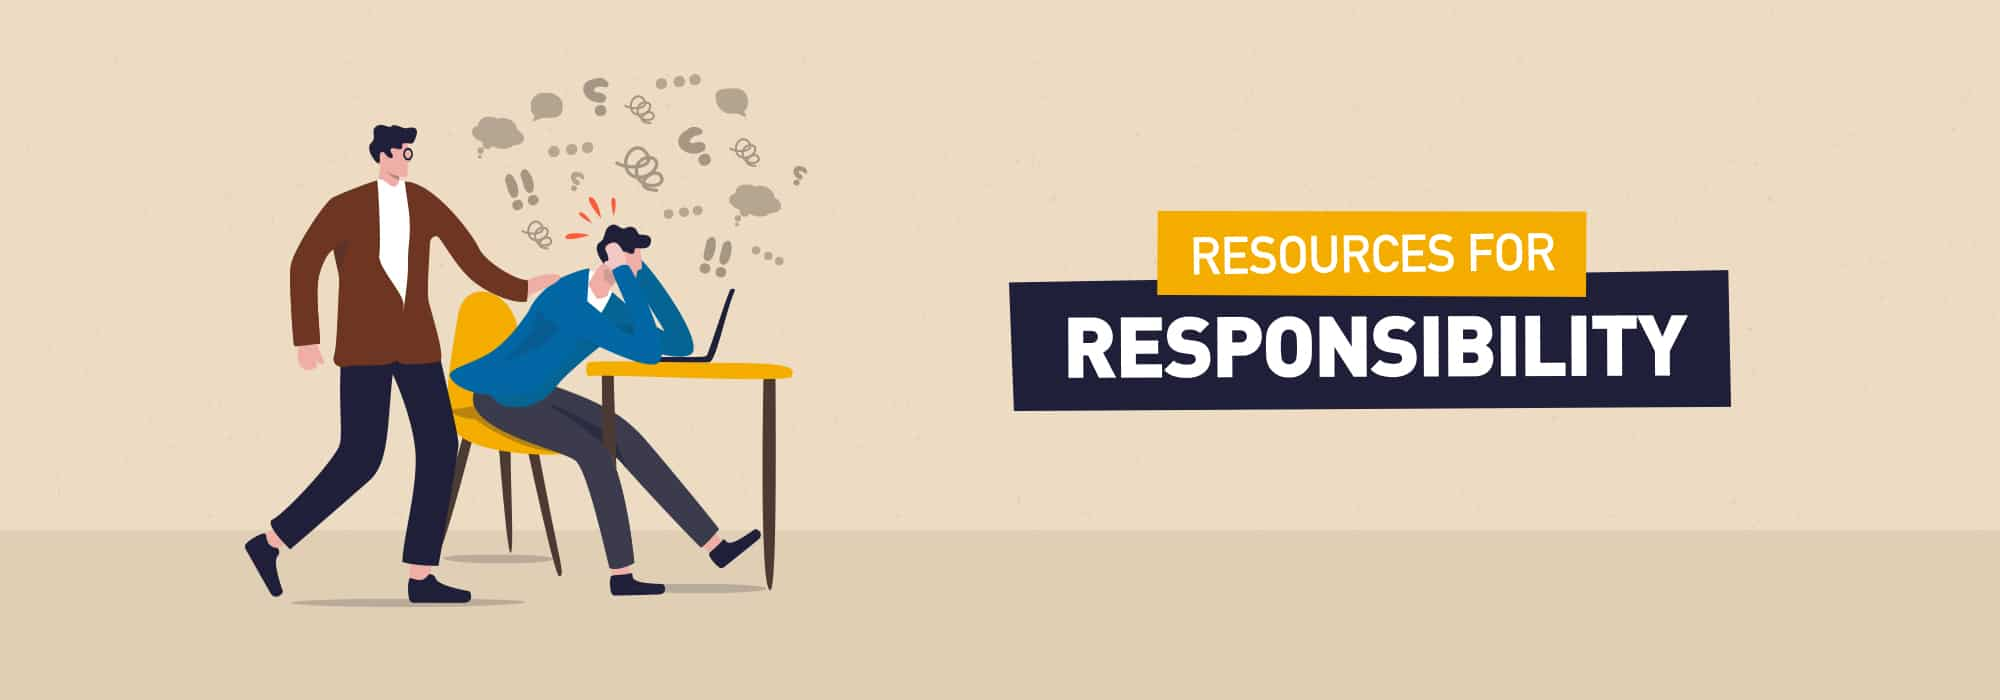 Resources for Responsibility